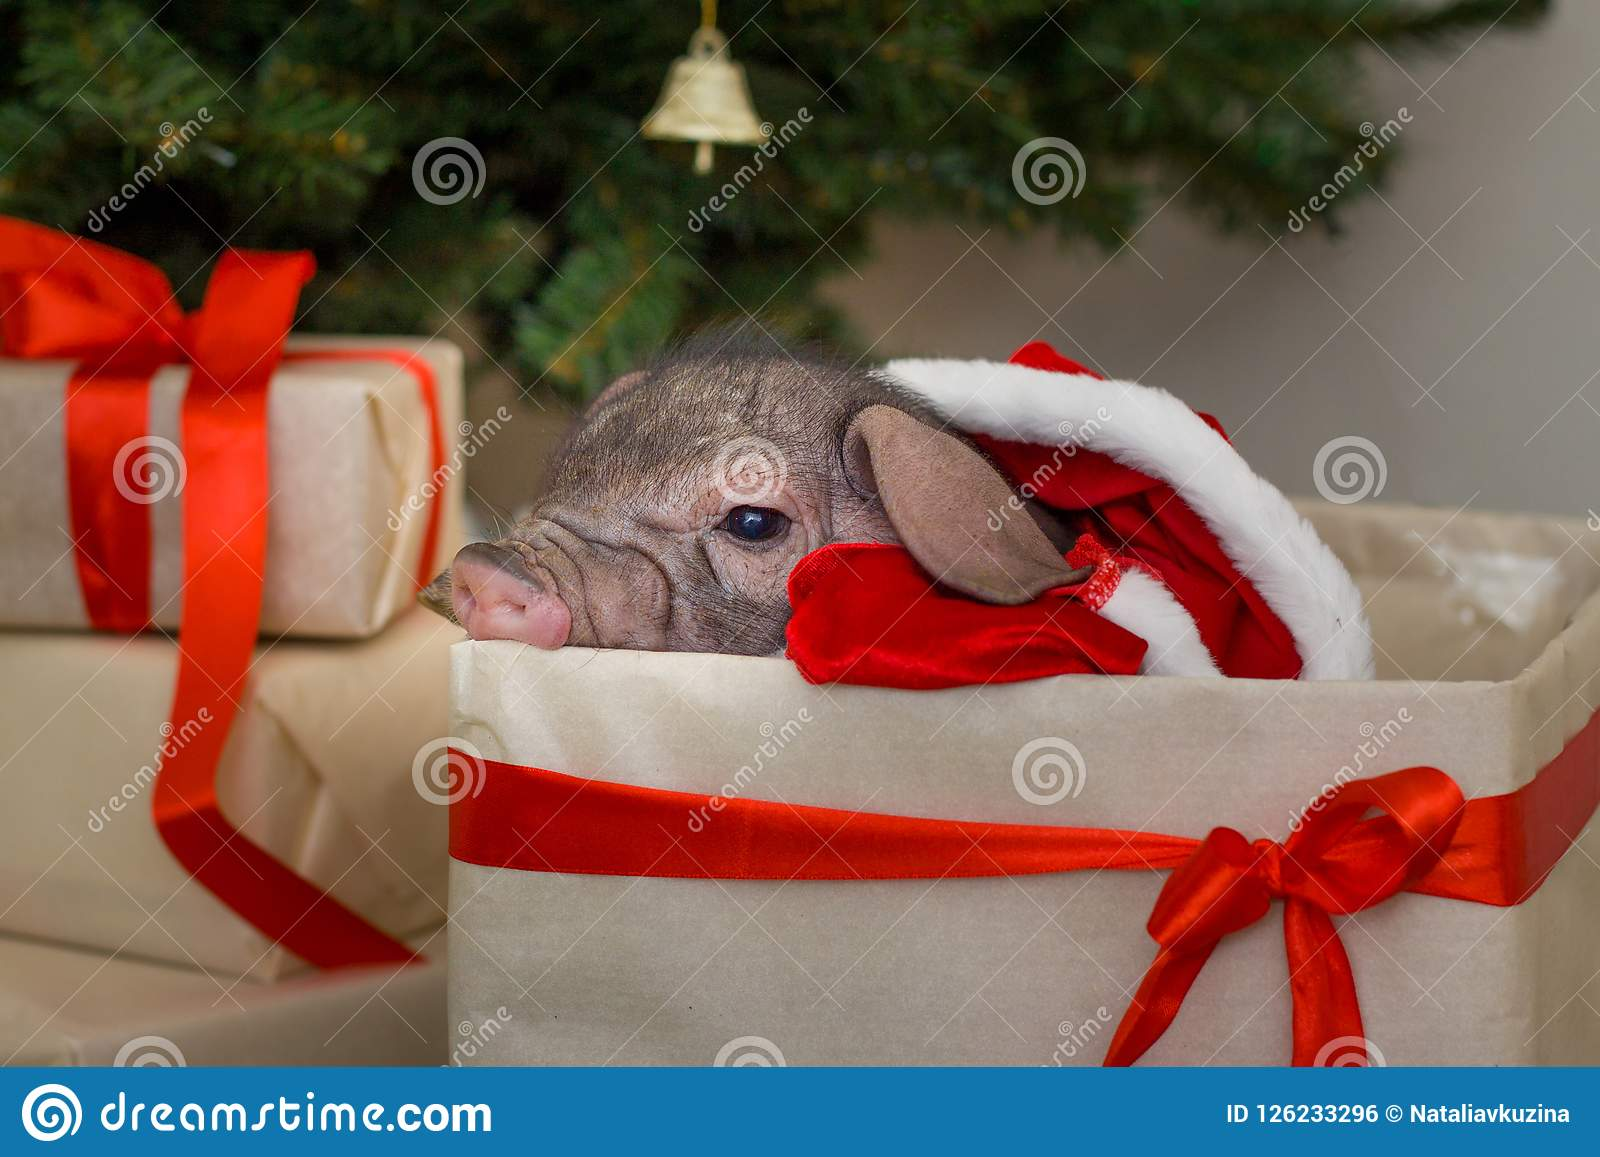 christmas and new year card with cute newborn santa pig in gift present box decorations symbol of the year chinese calendar fir on background